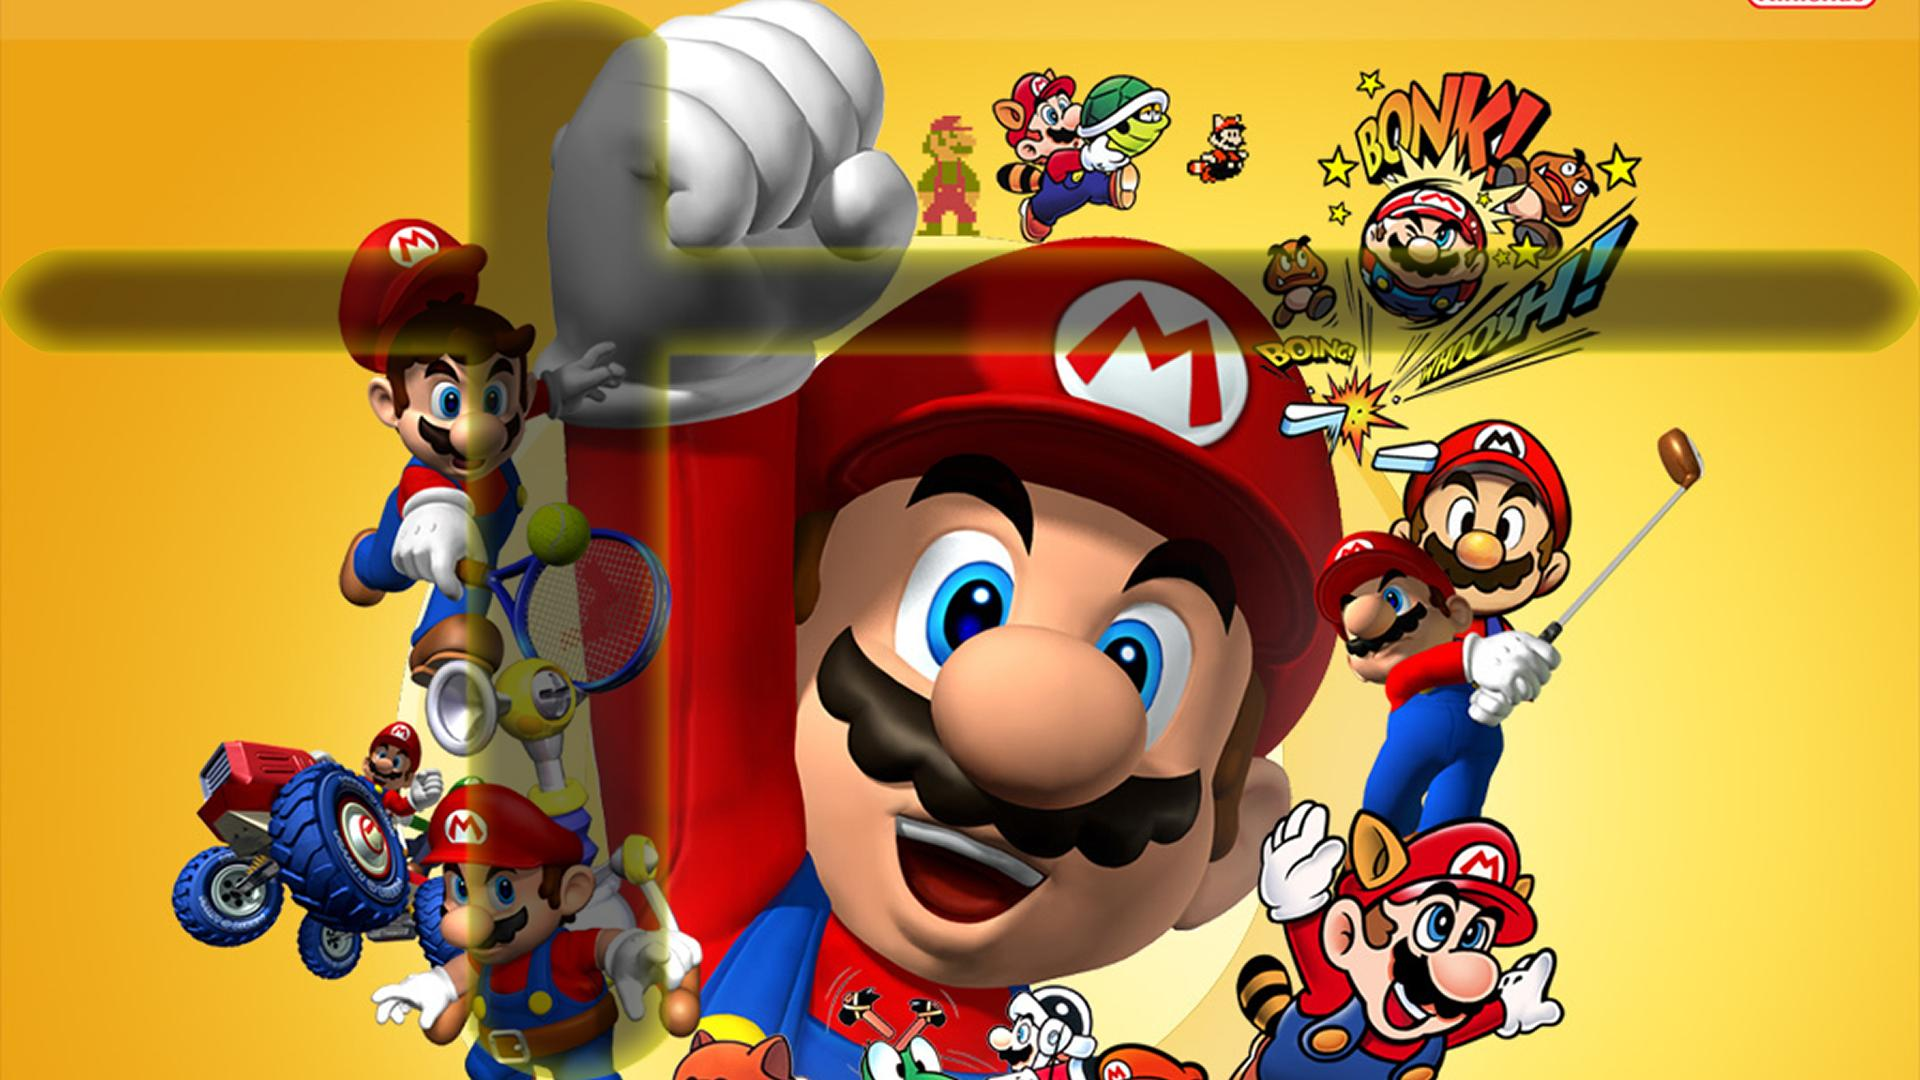 78+] Mario Wallpaper Hd on WallpaperSafari